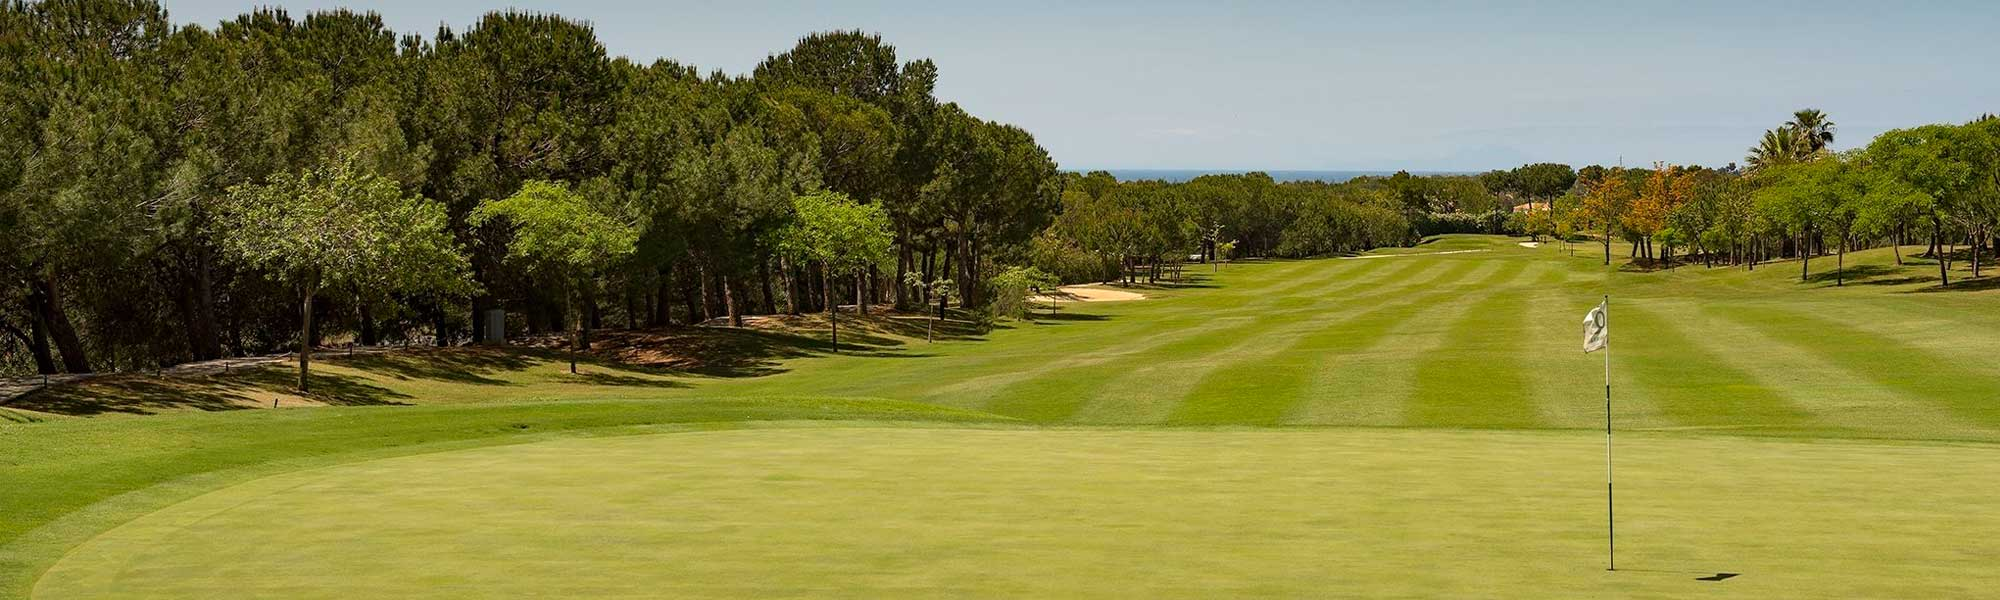 Marbella Golf Courses